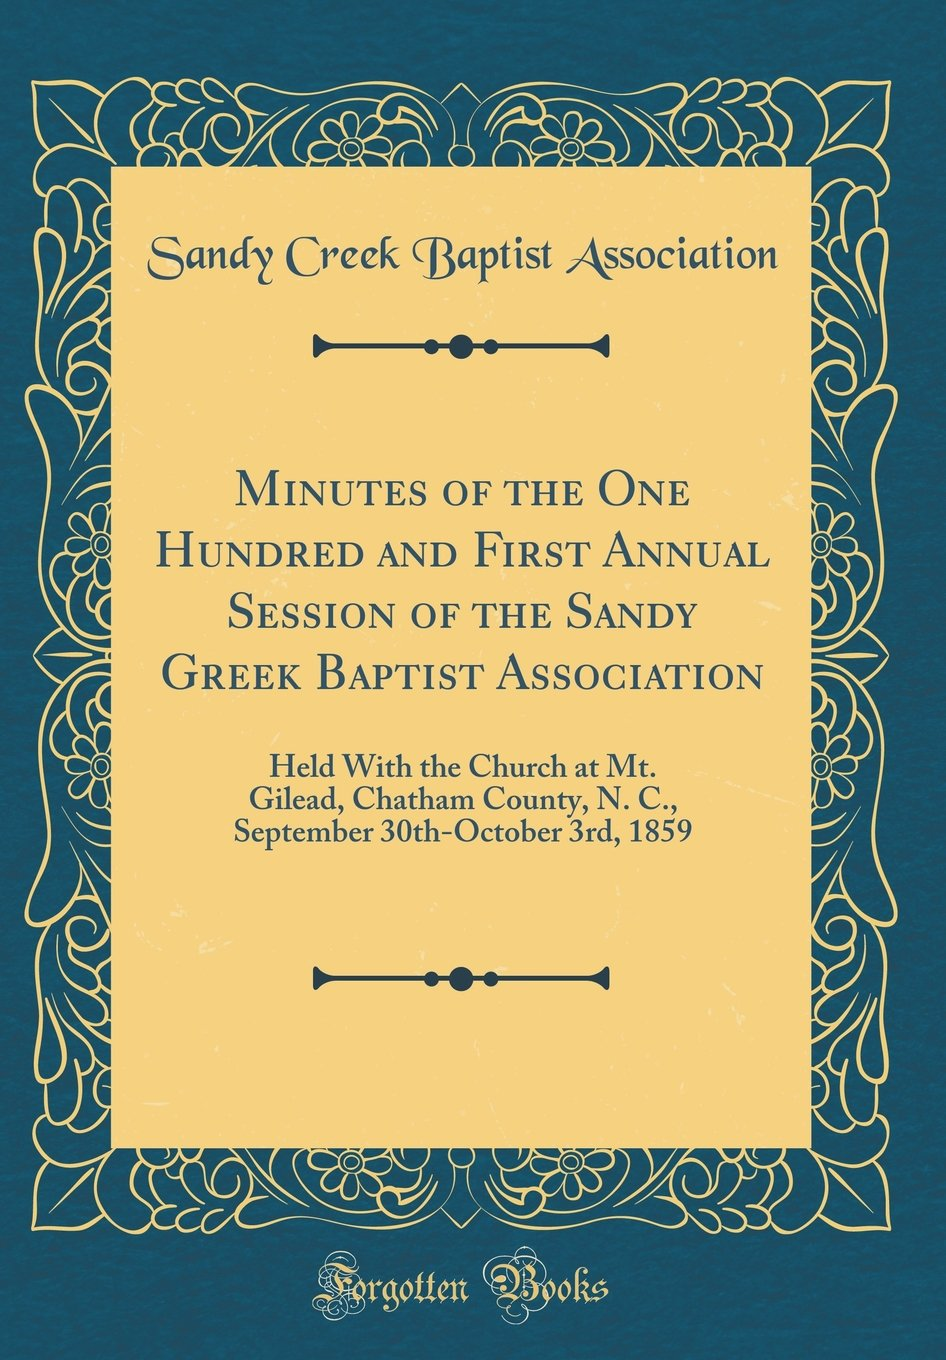 Read Online Minutes of the One Hundred and First Annual Session of the Sandy Greek Baptist Association: Held with the Church at Mt. Gilead, Chatham County, N. C., ... 30th-October 3rd, 1859 (Classic Reprint) pdf epub